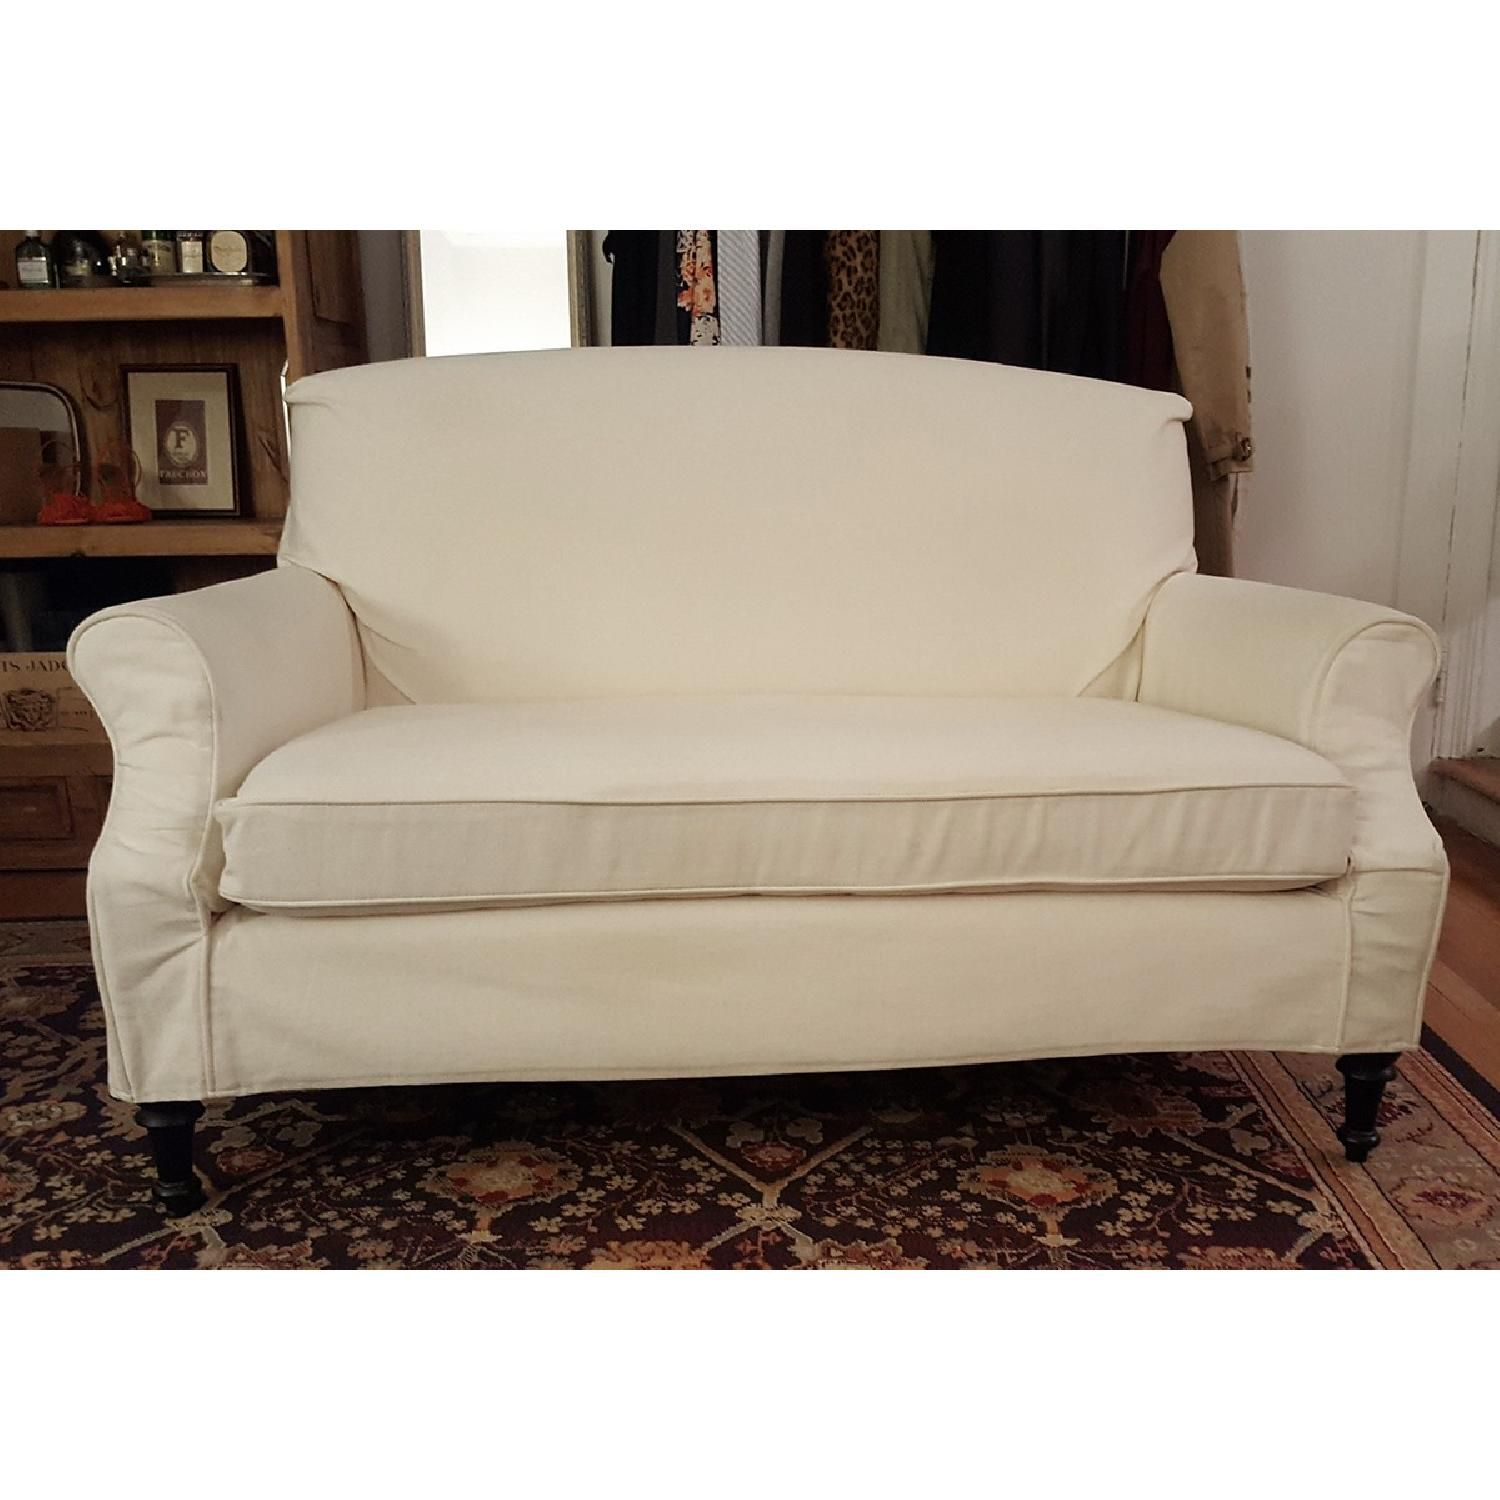 Mitchell Gold for Crate & Barrel Astor Settee